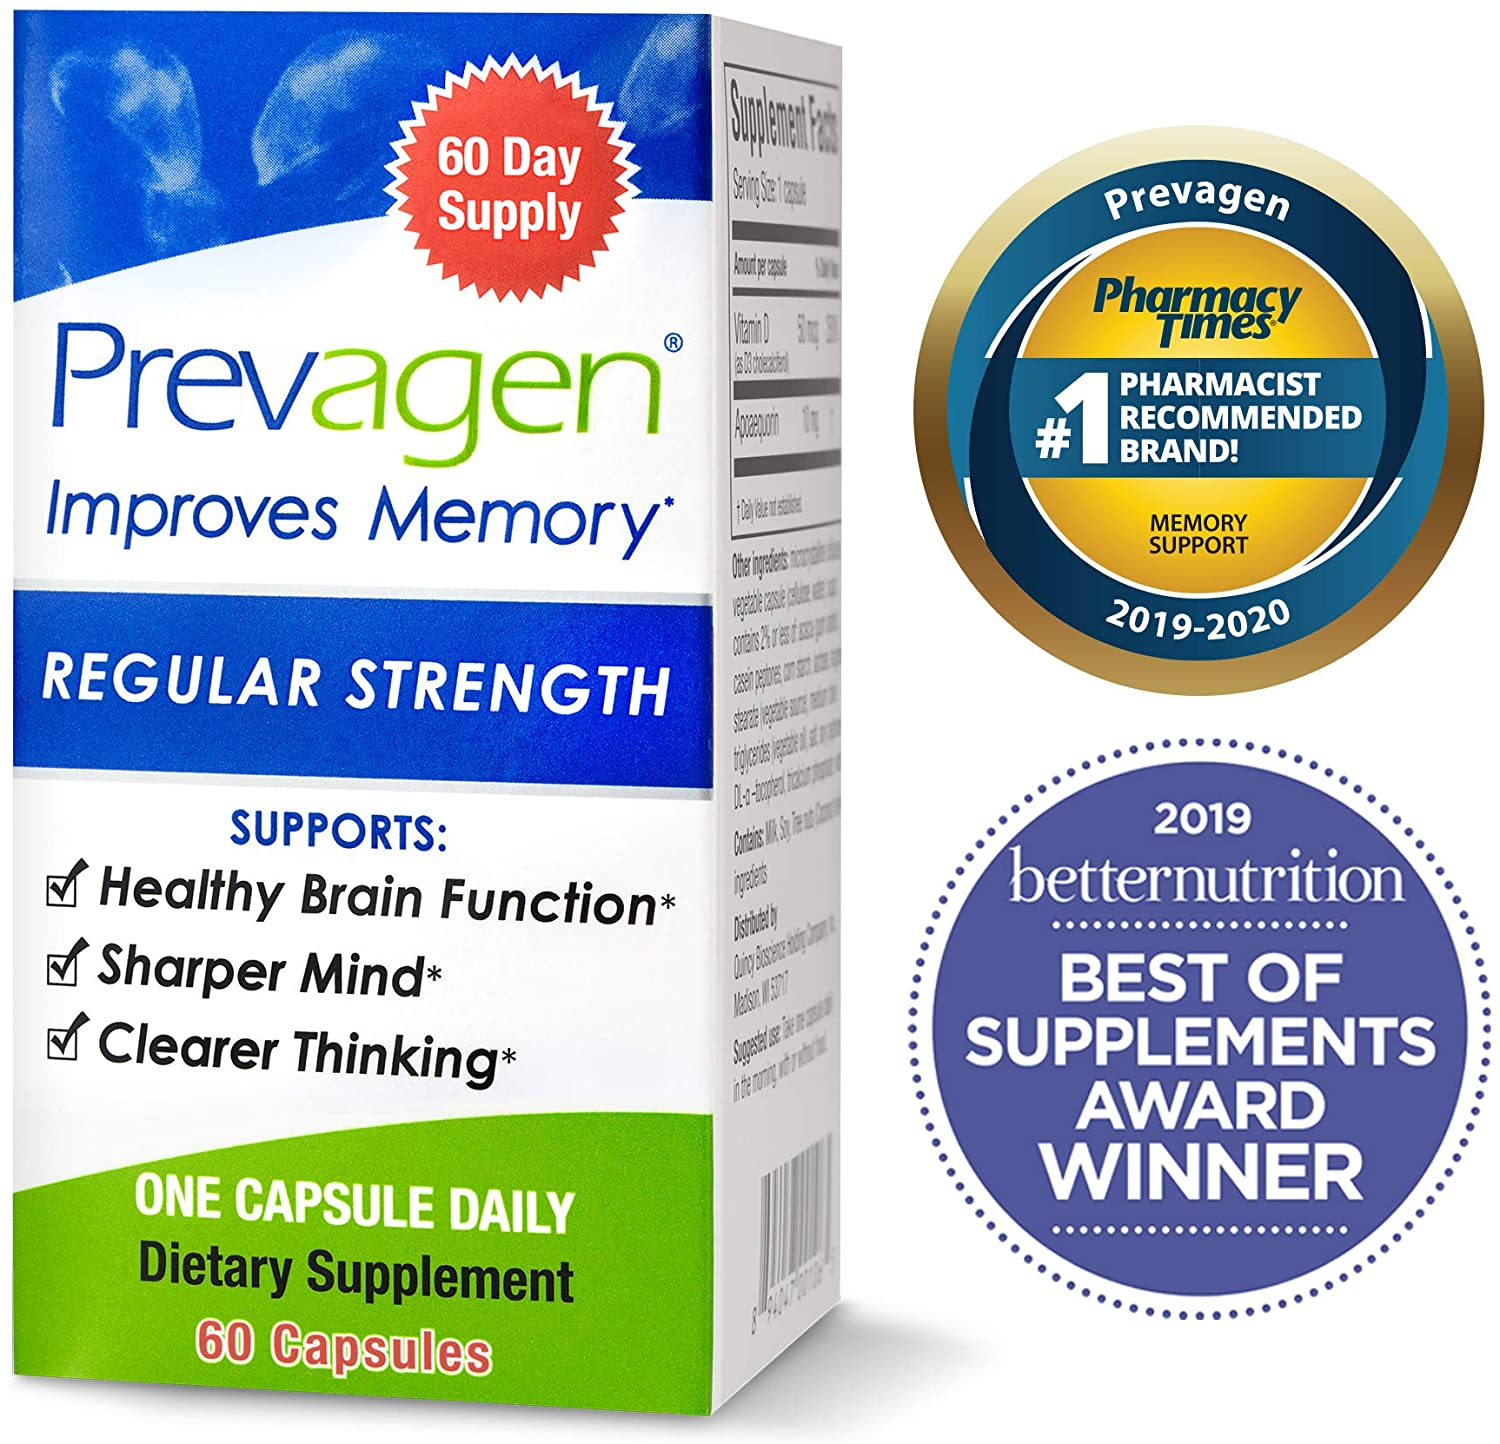 Prevagen Improves Memory - Regular Strength 10mg, 60 Capsules, with Apoaequorin & Vitamin D | Brain Supplement for Better Brain Health, Supports Healthy Brain Function and Clarity | Memory Supplement